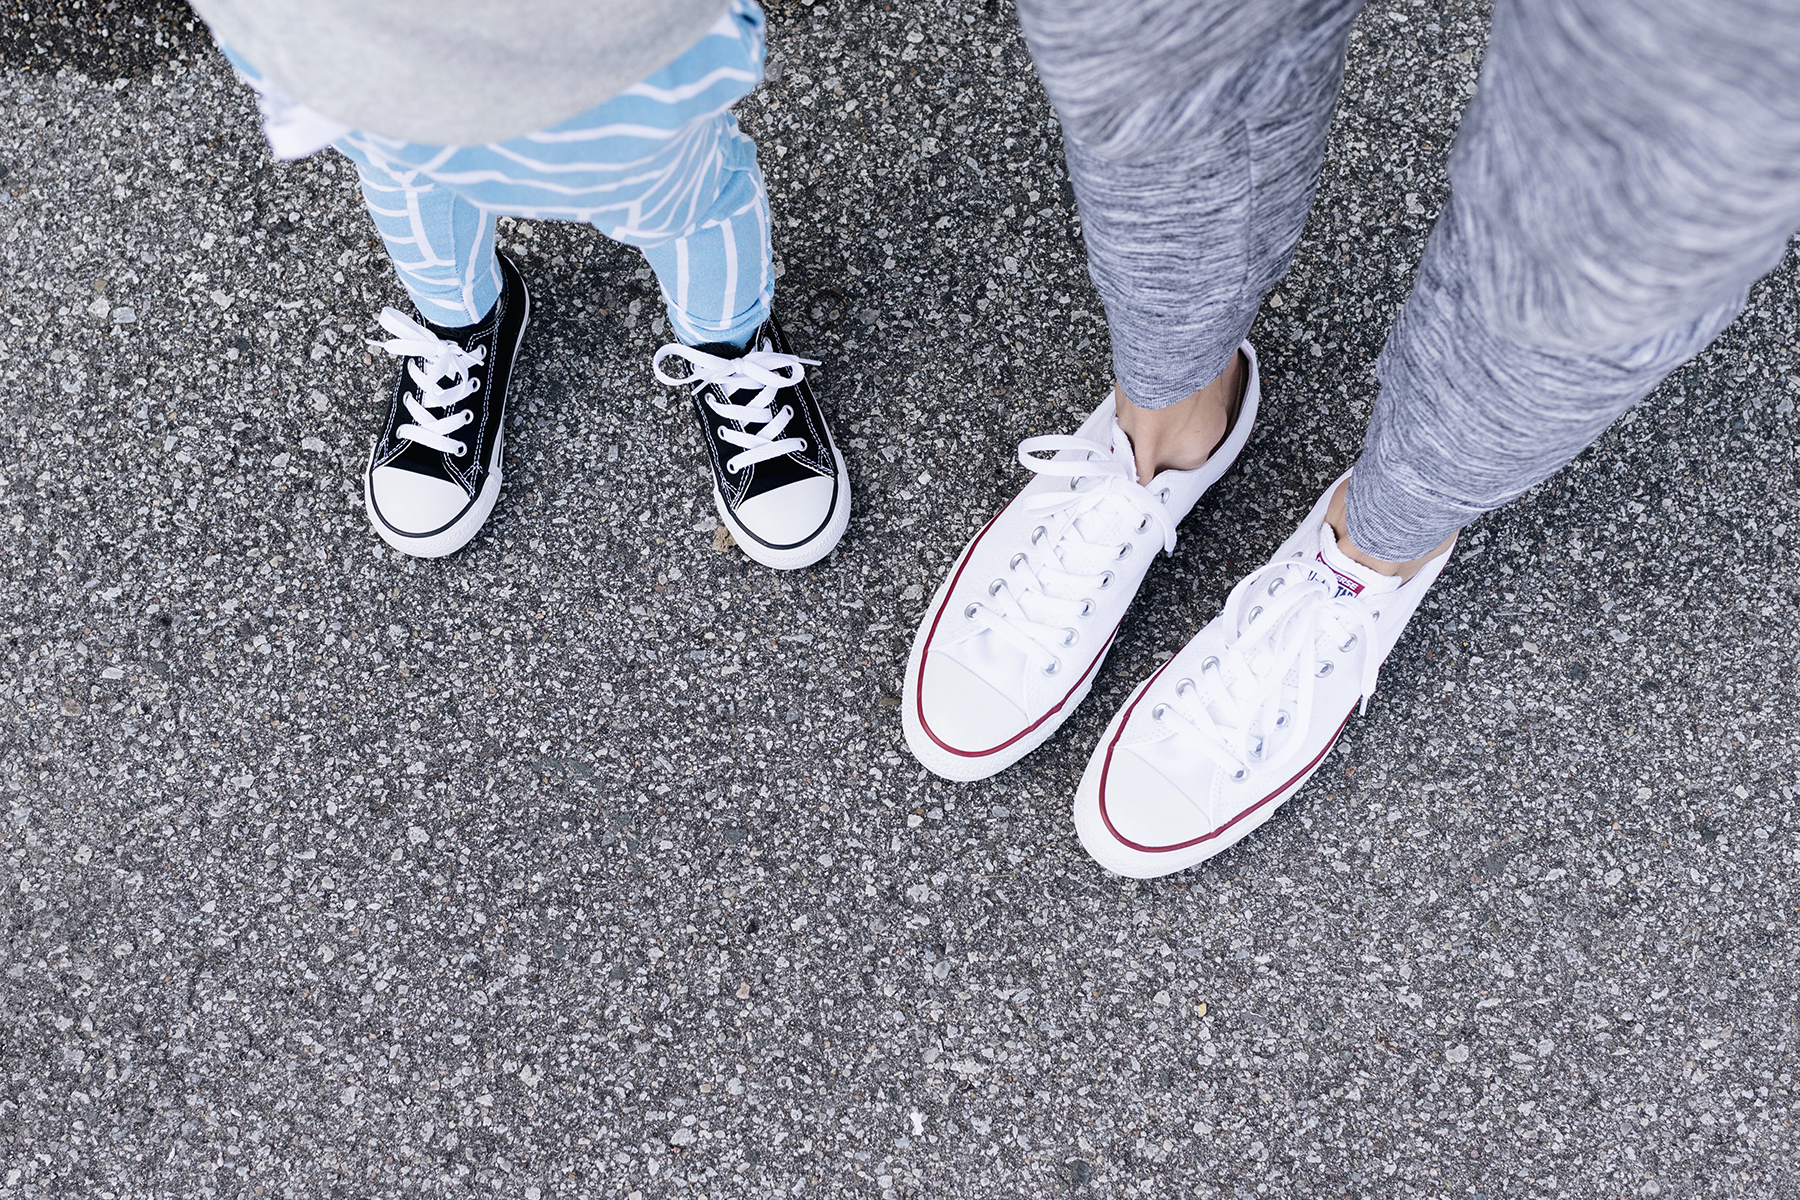 Matching converse shoes for mom + toddler girl | Happy Grey Lucky